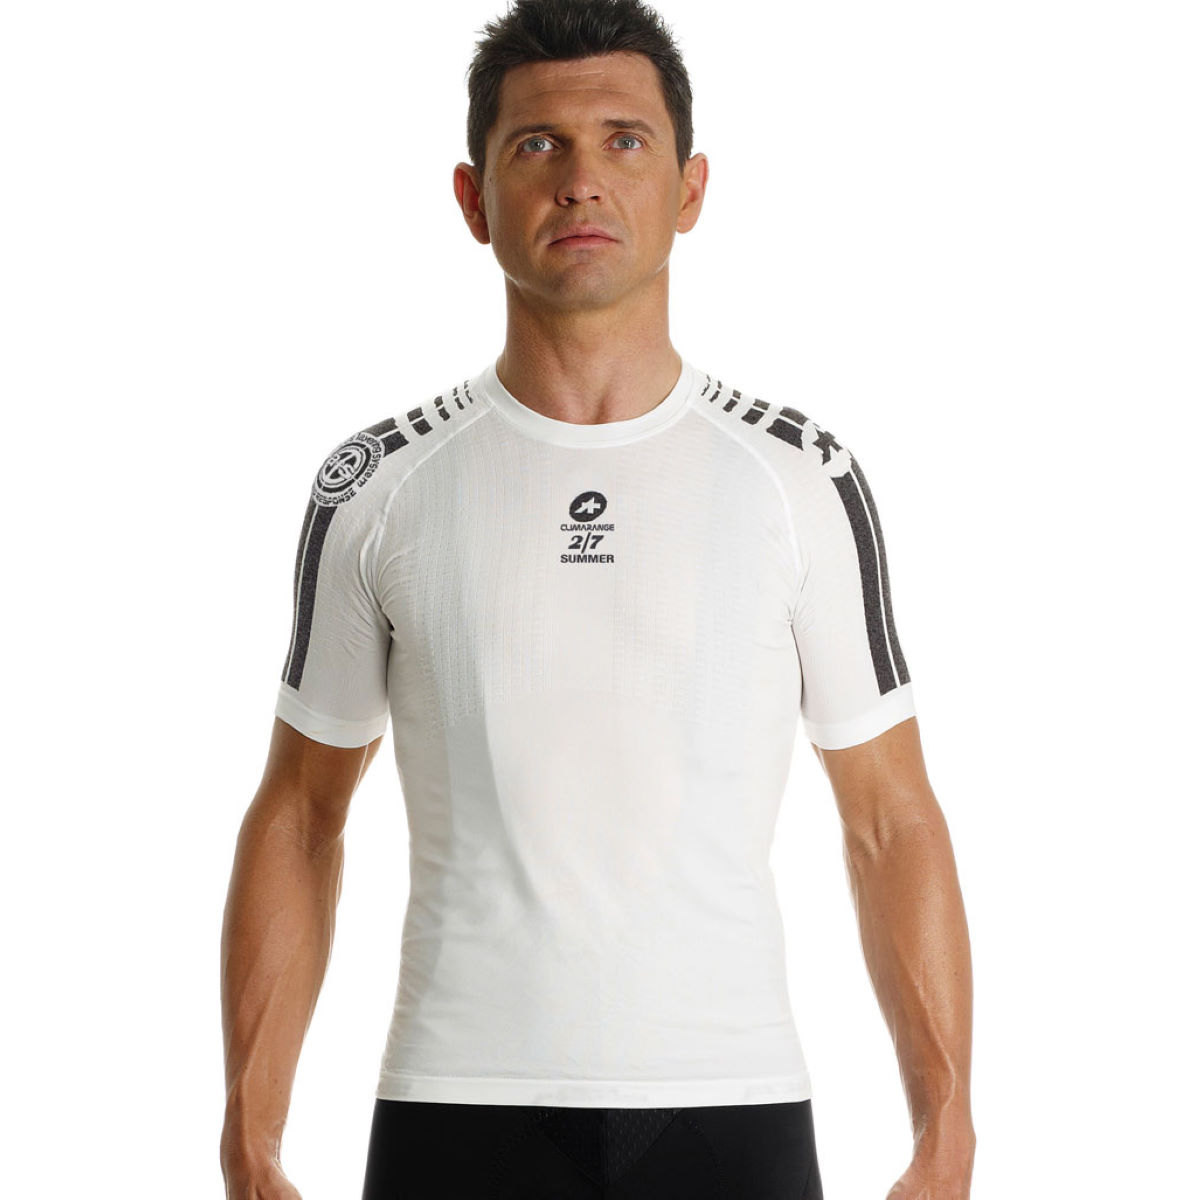 Assos SS.skinFoil_summer Short Sleeve Base Layer